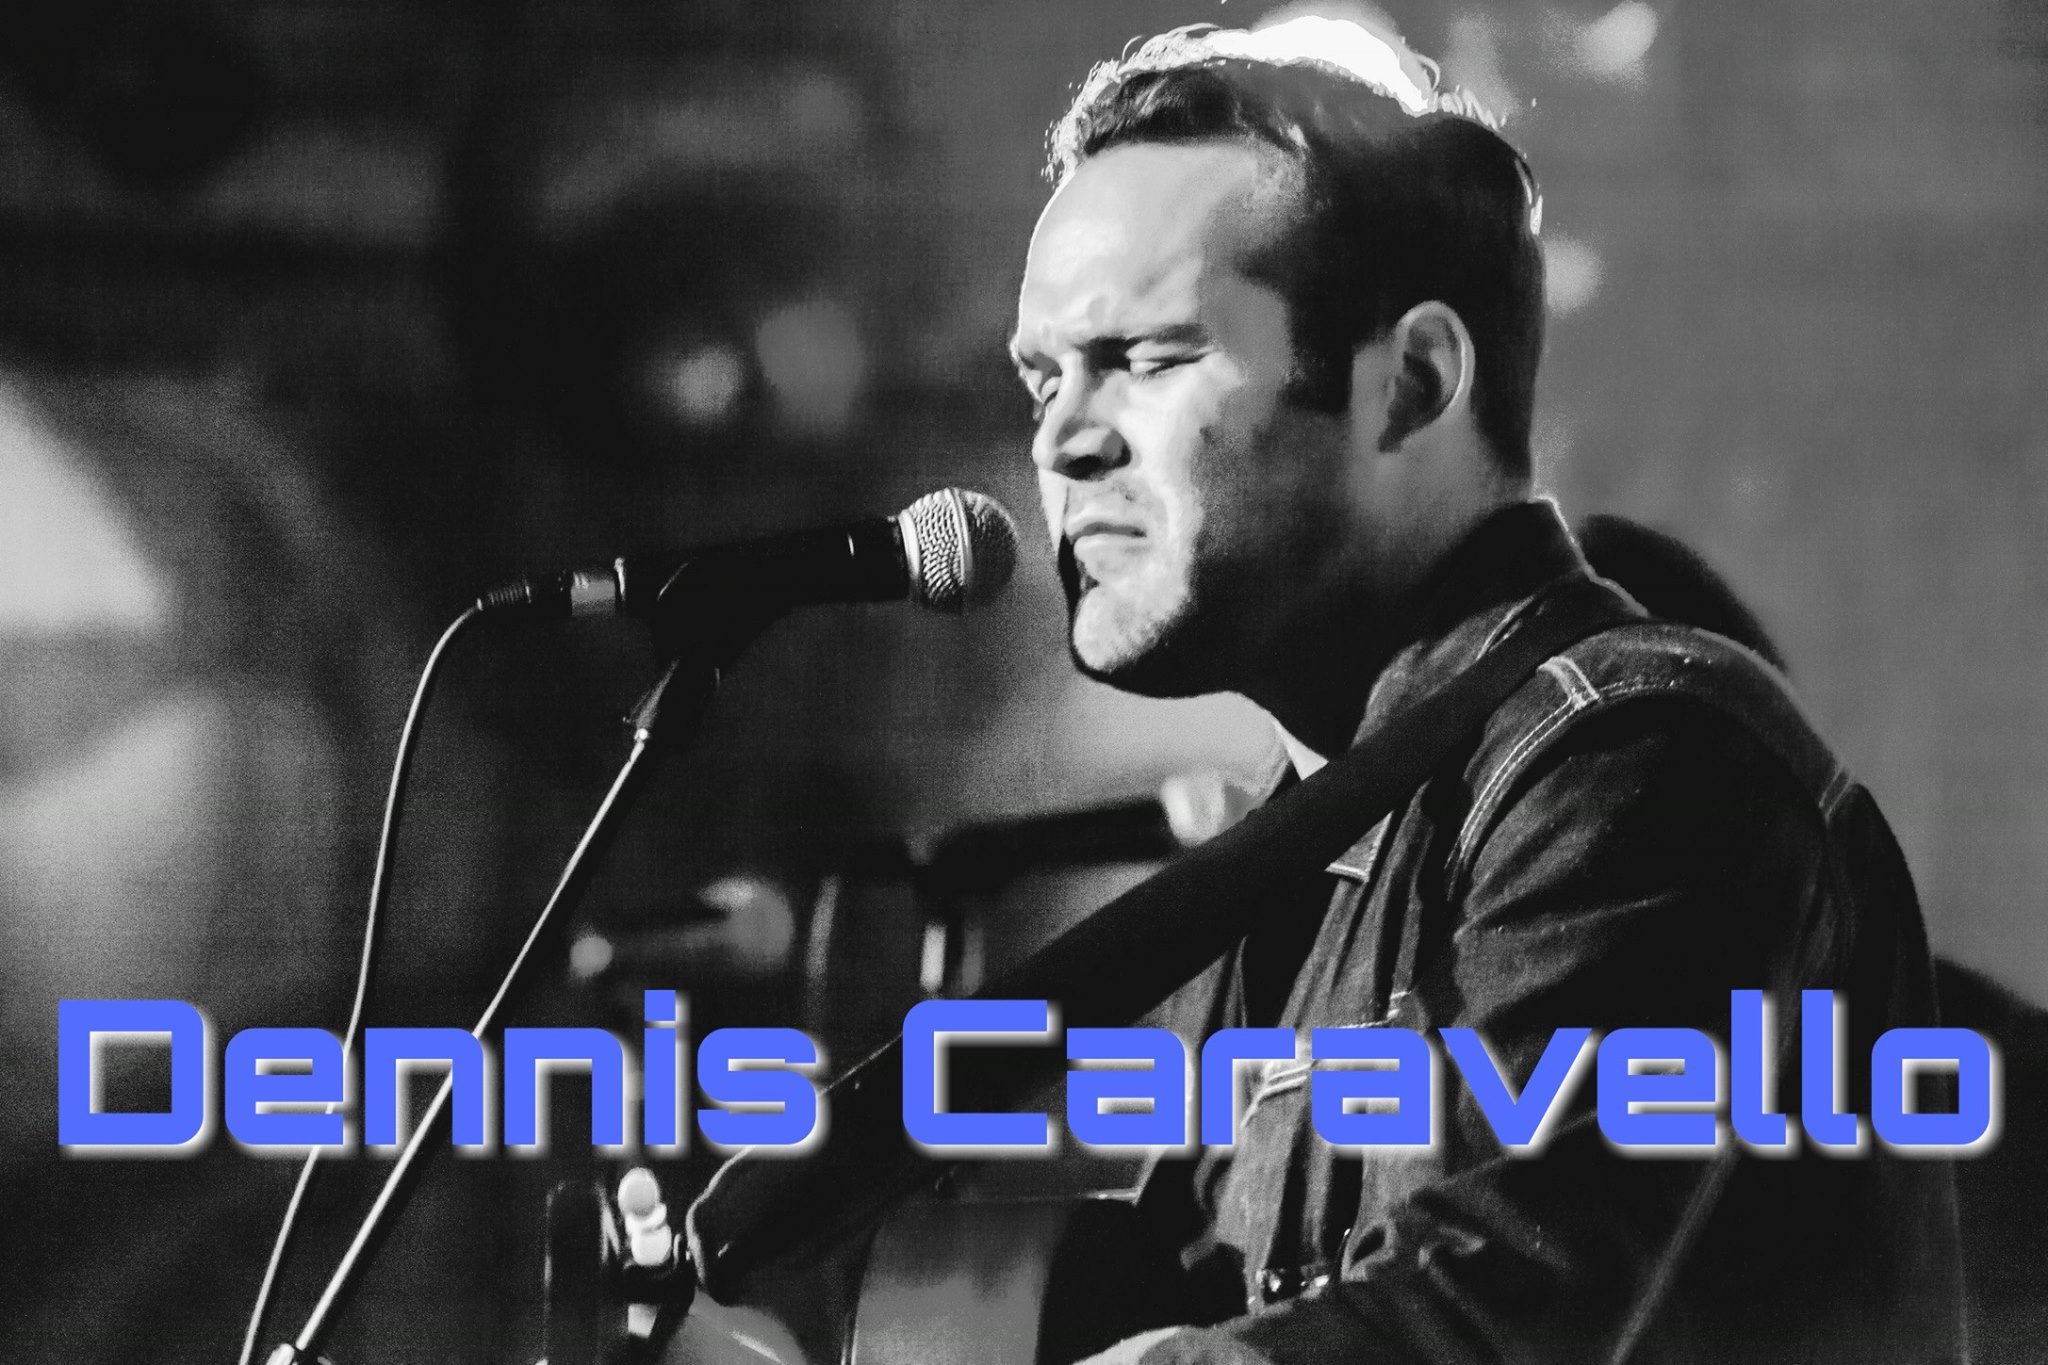 Dennis Caravello live at Niko's Tavern in Pingree Grove